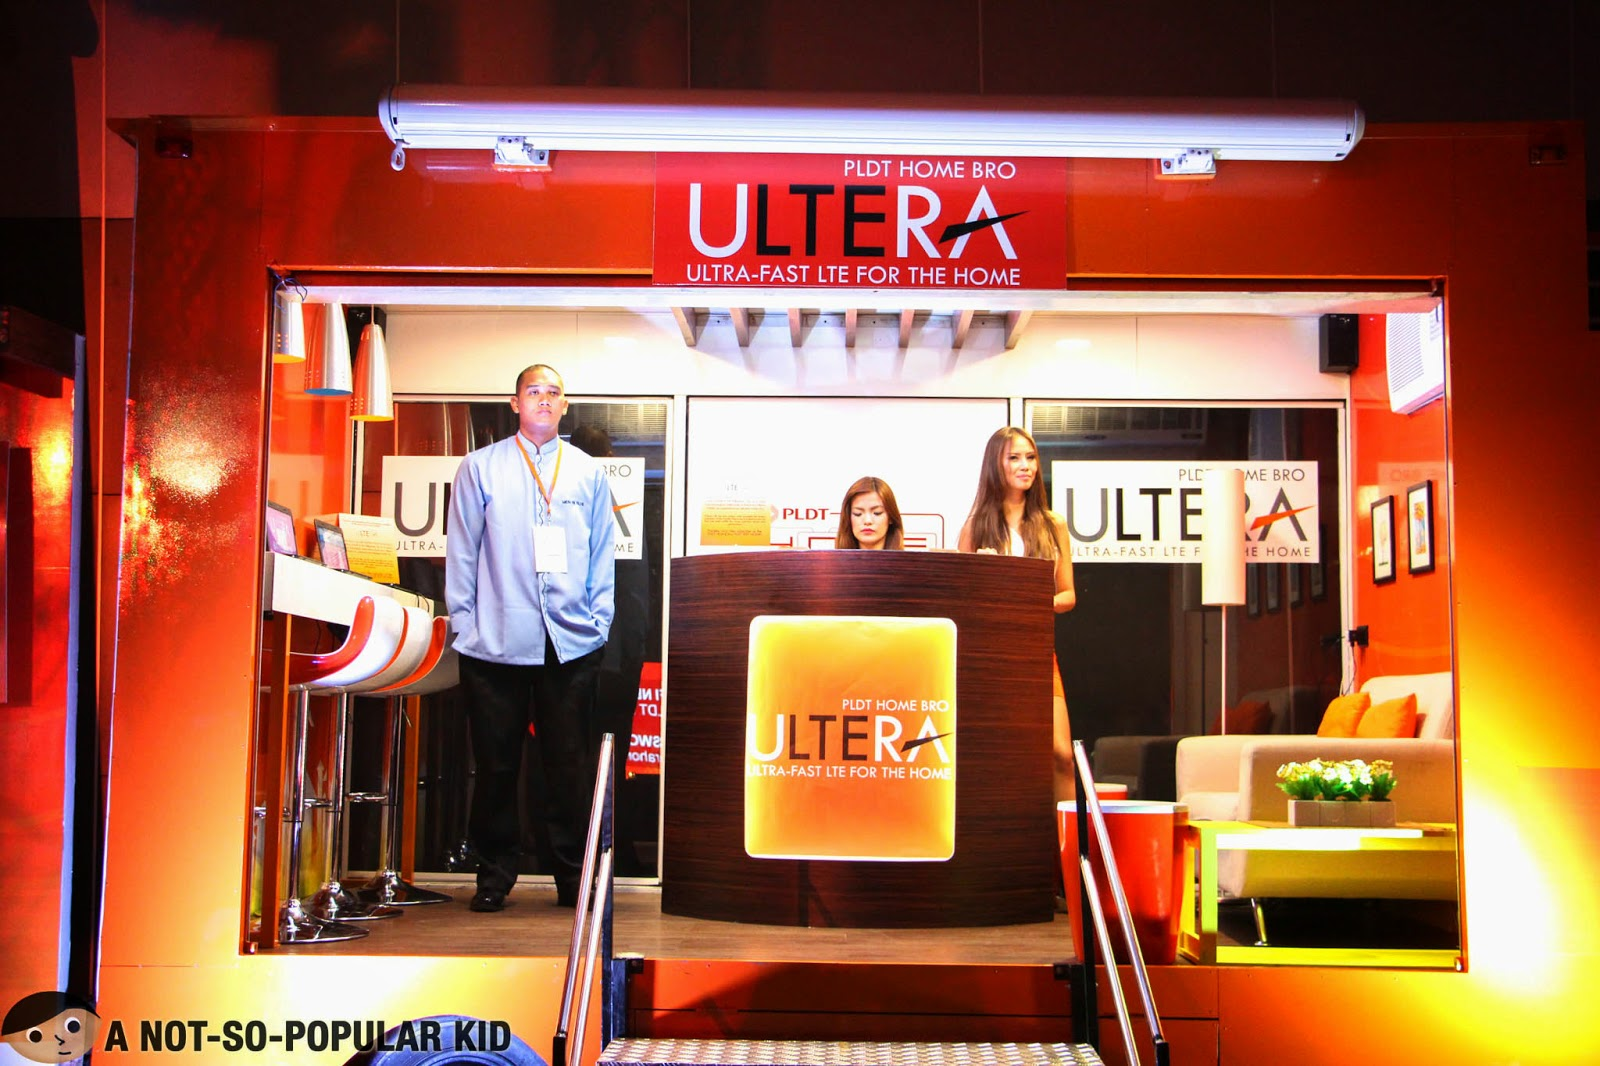 PLDT Home Bro Ultera - Ultra-Fast LTE for the Home